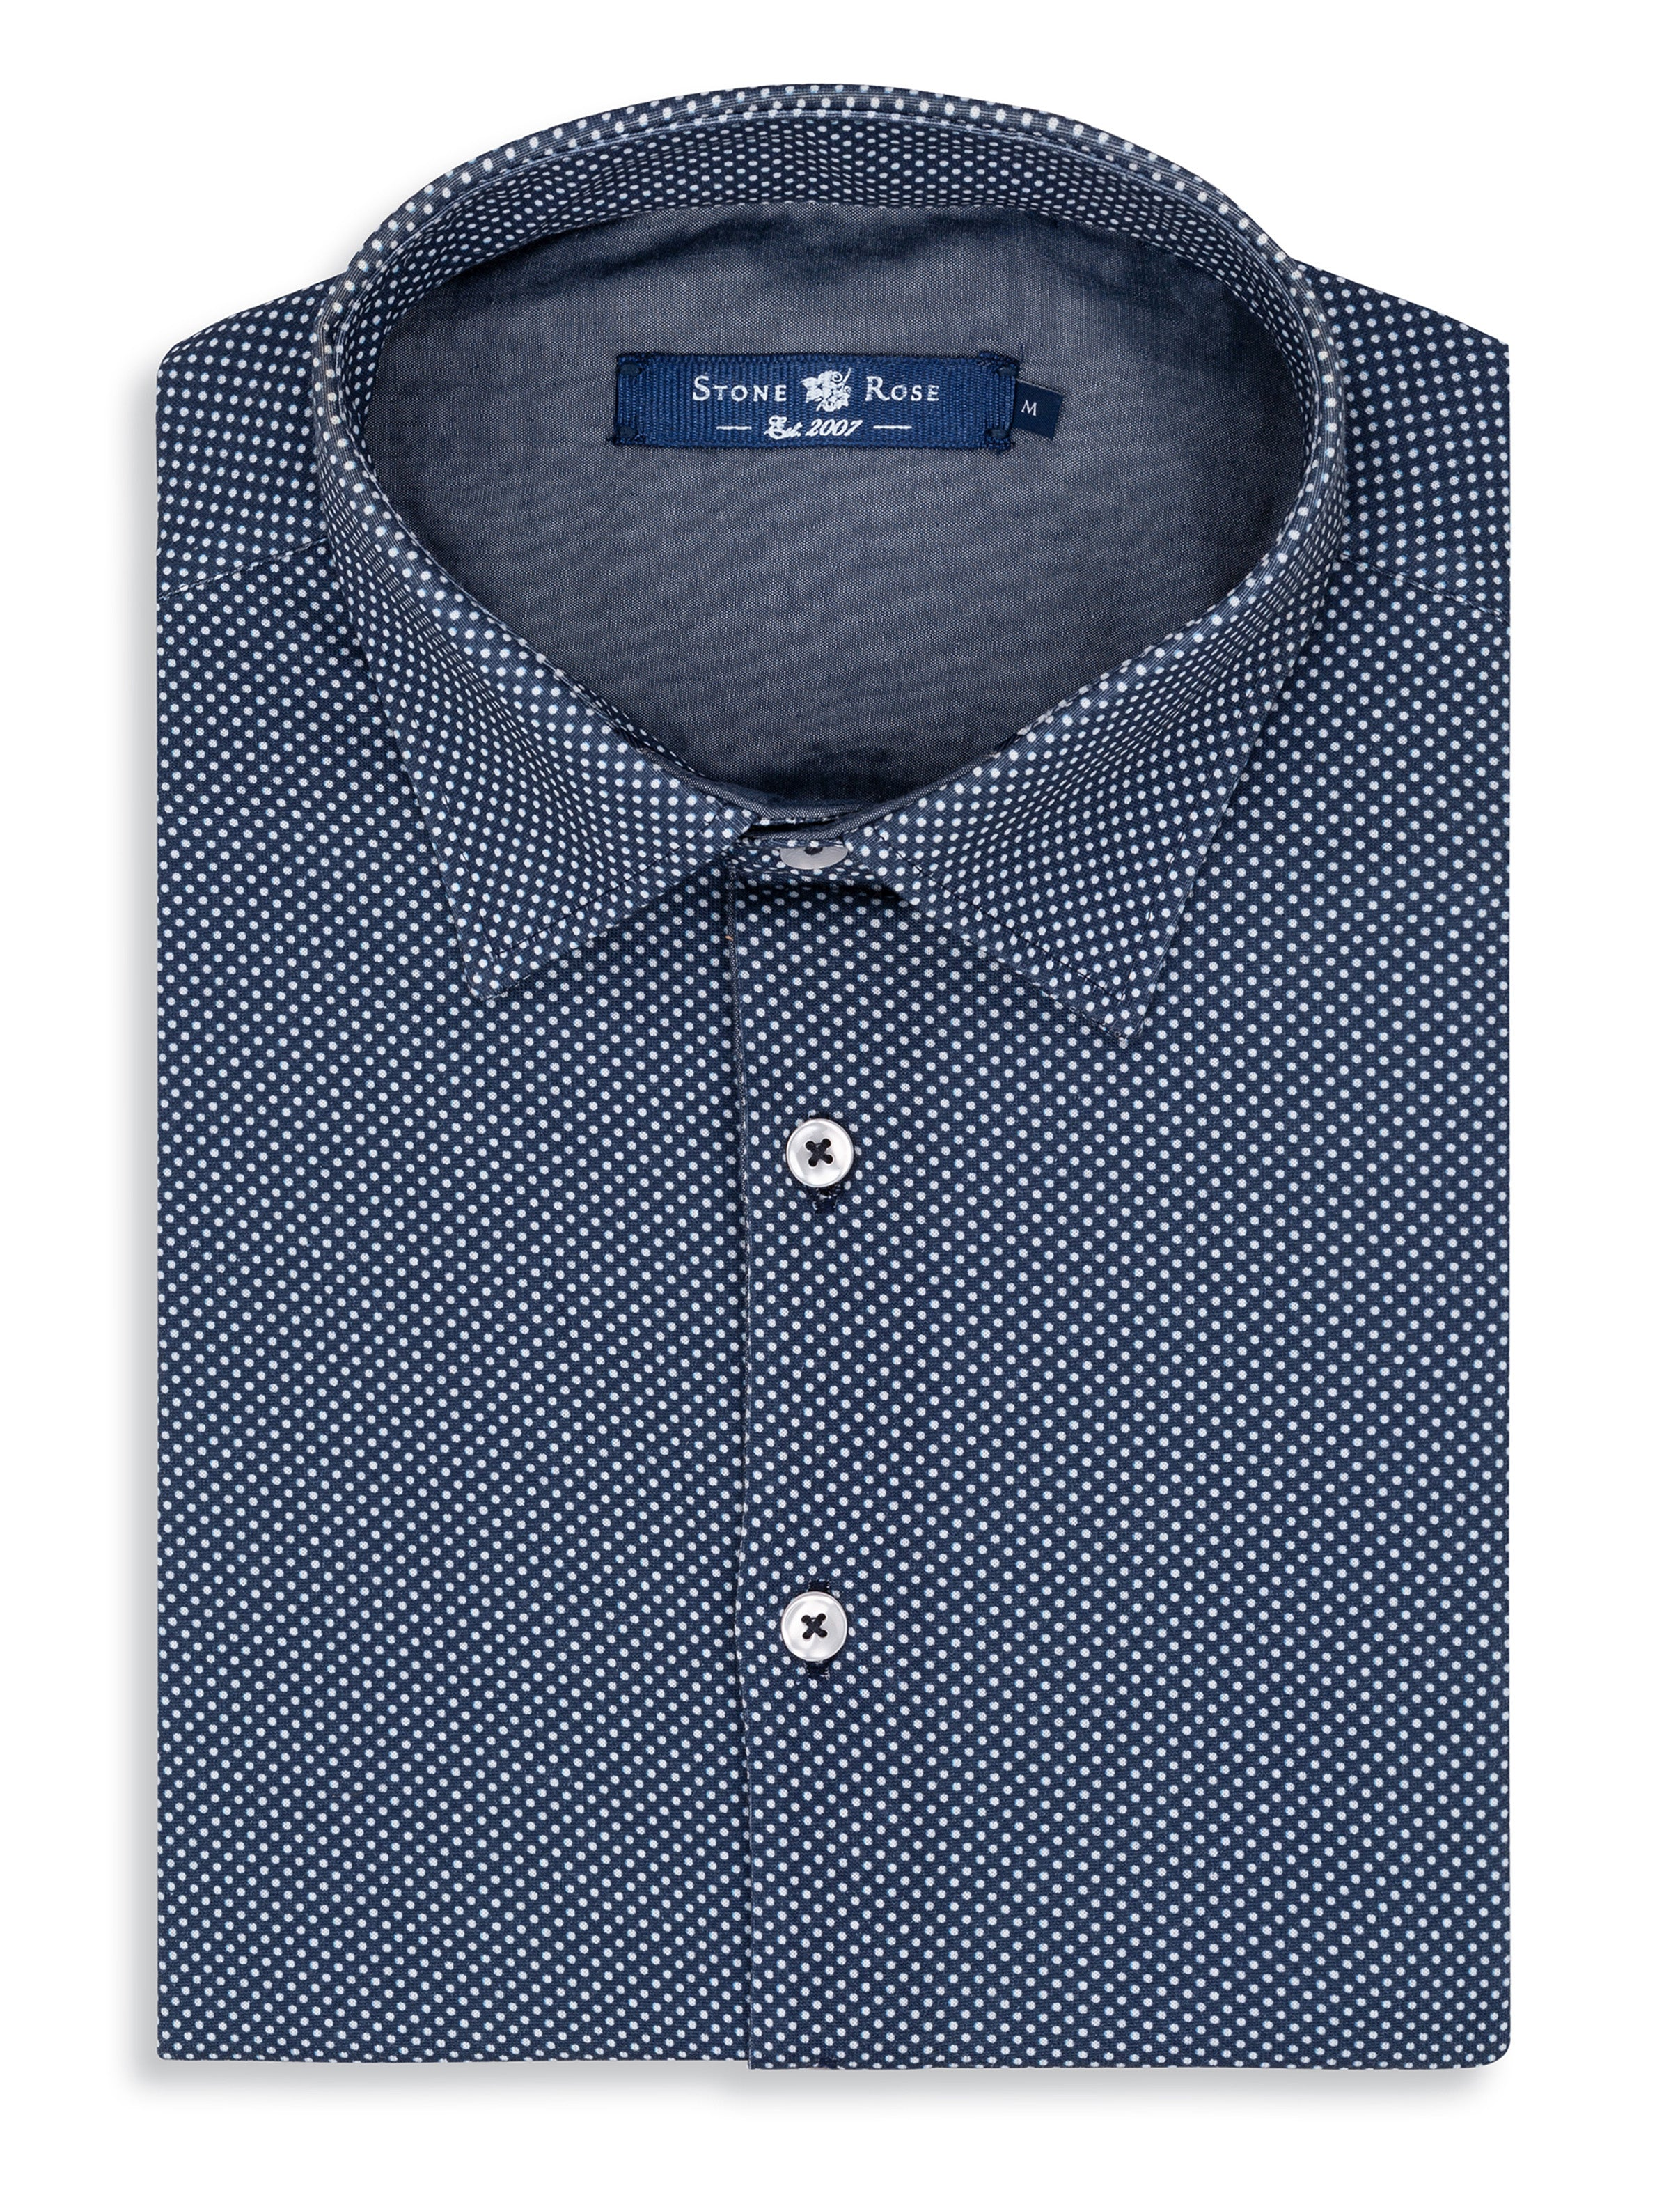 Navy Micro Dot Knit Short Sleeve Shirt